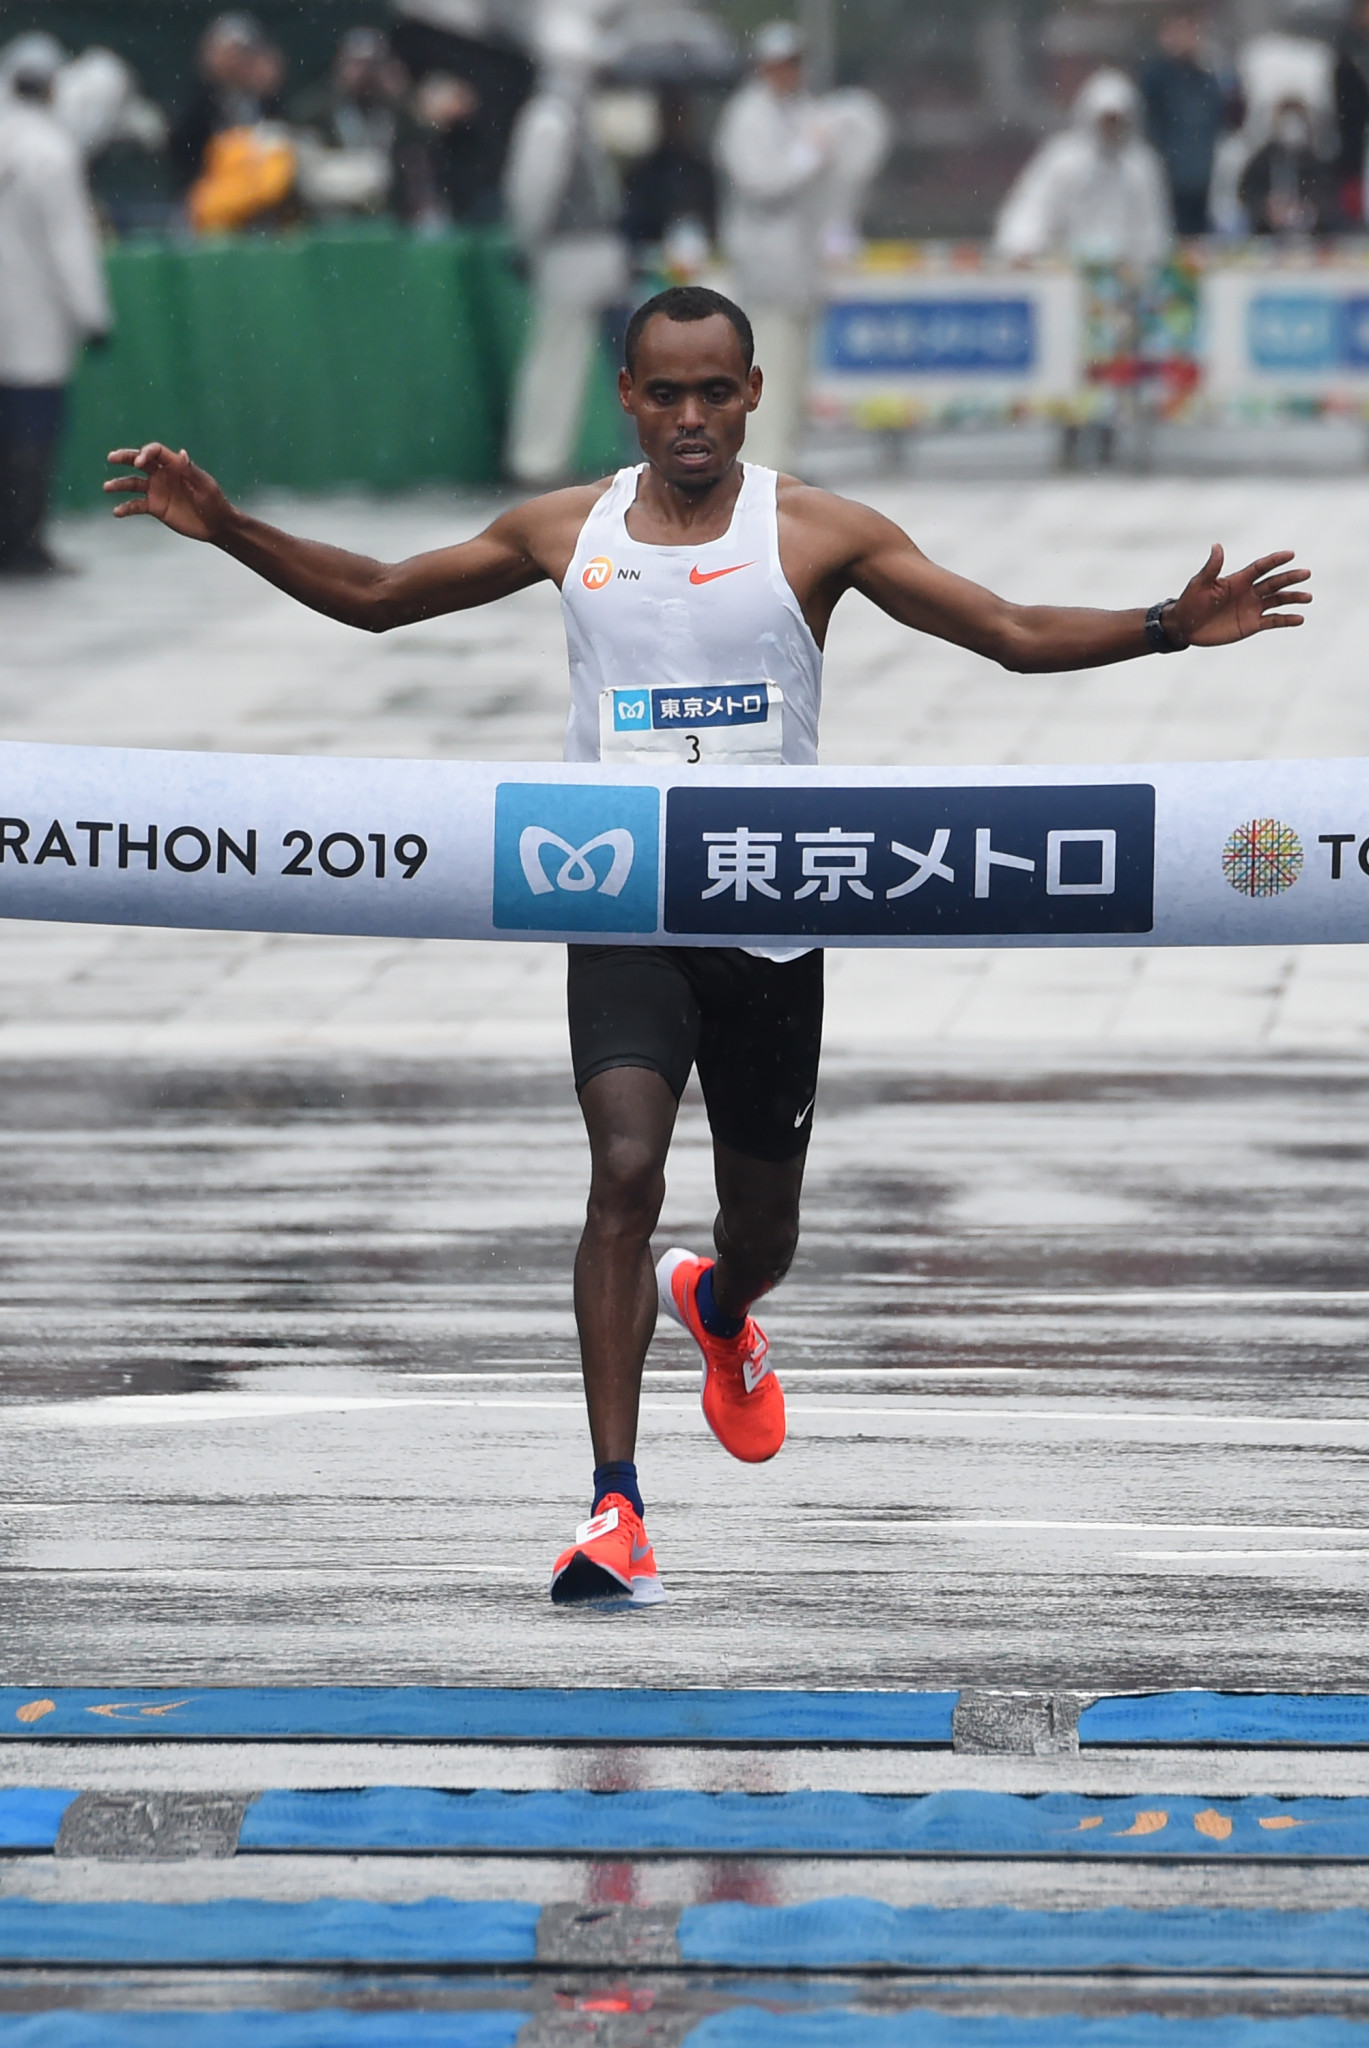 Governor criticised for putting hands in pockets during Tokyo Marathon ceremony